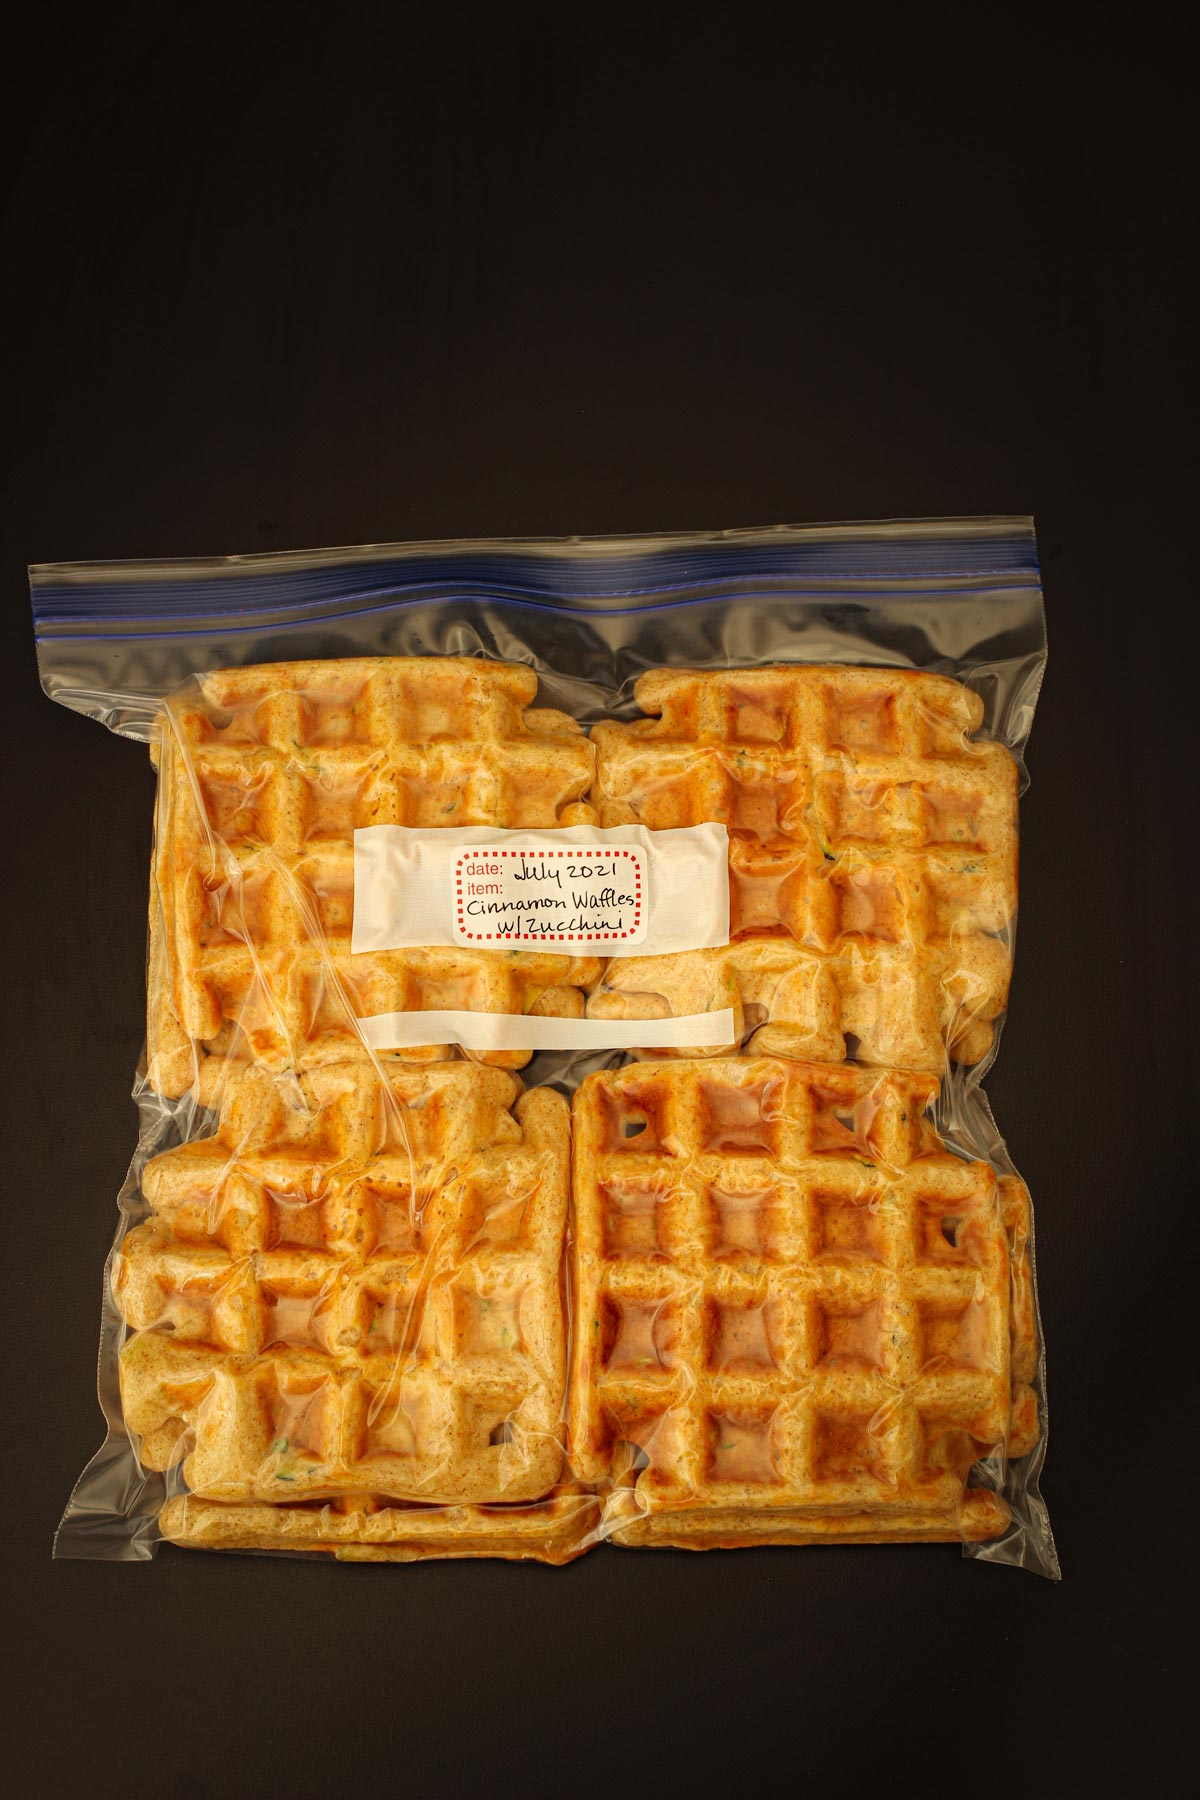 cinnamon waffles bagged up for freezing.